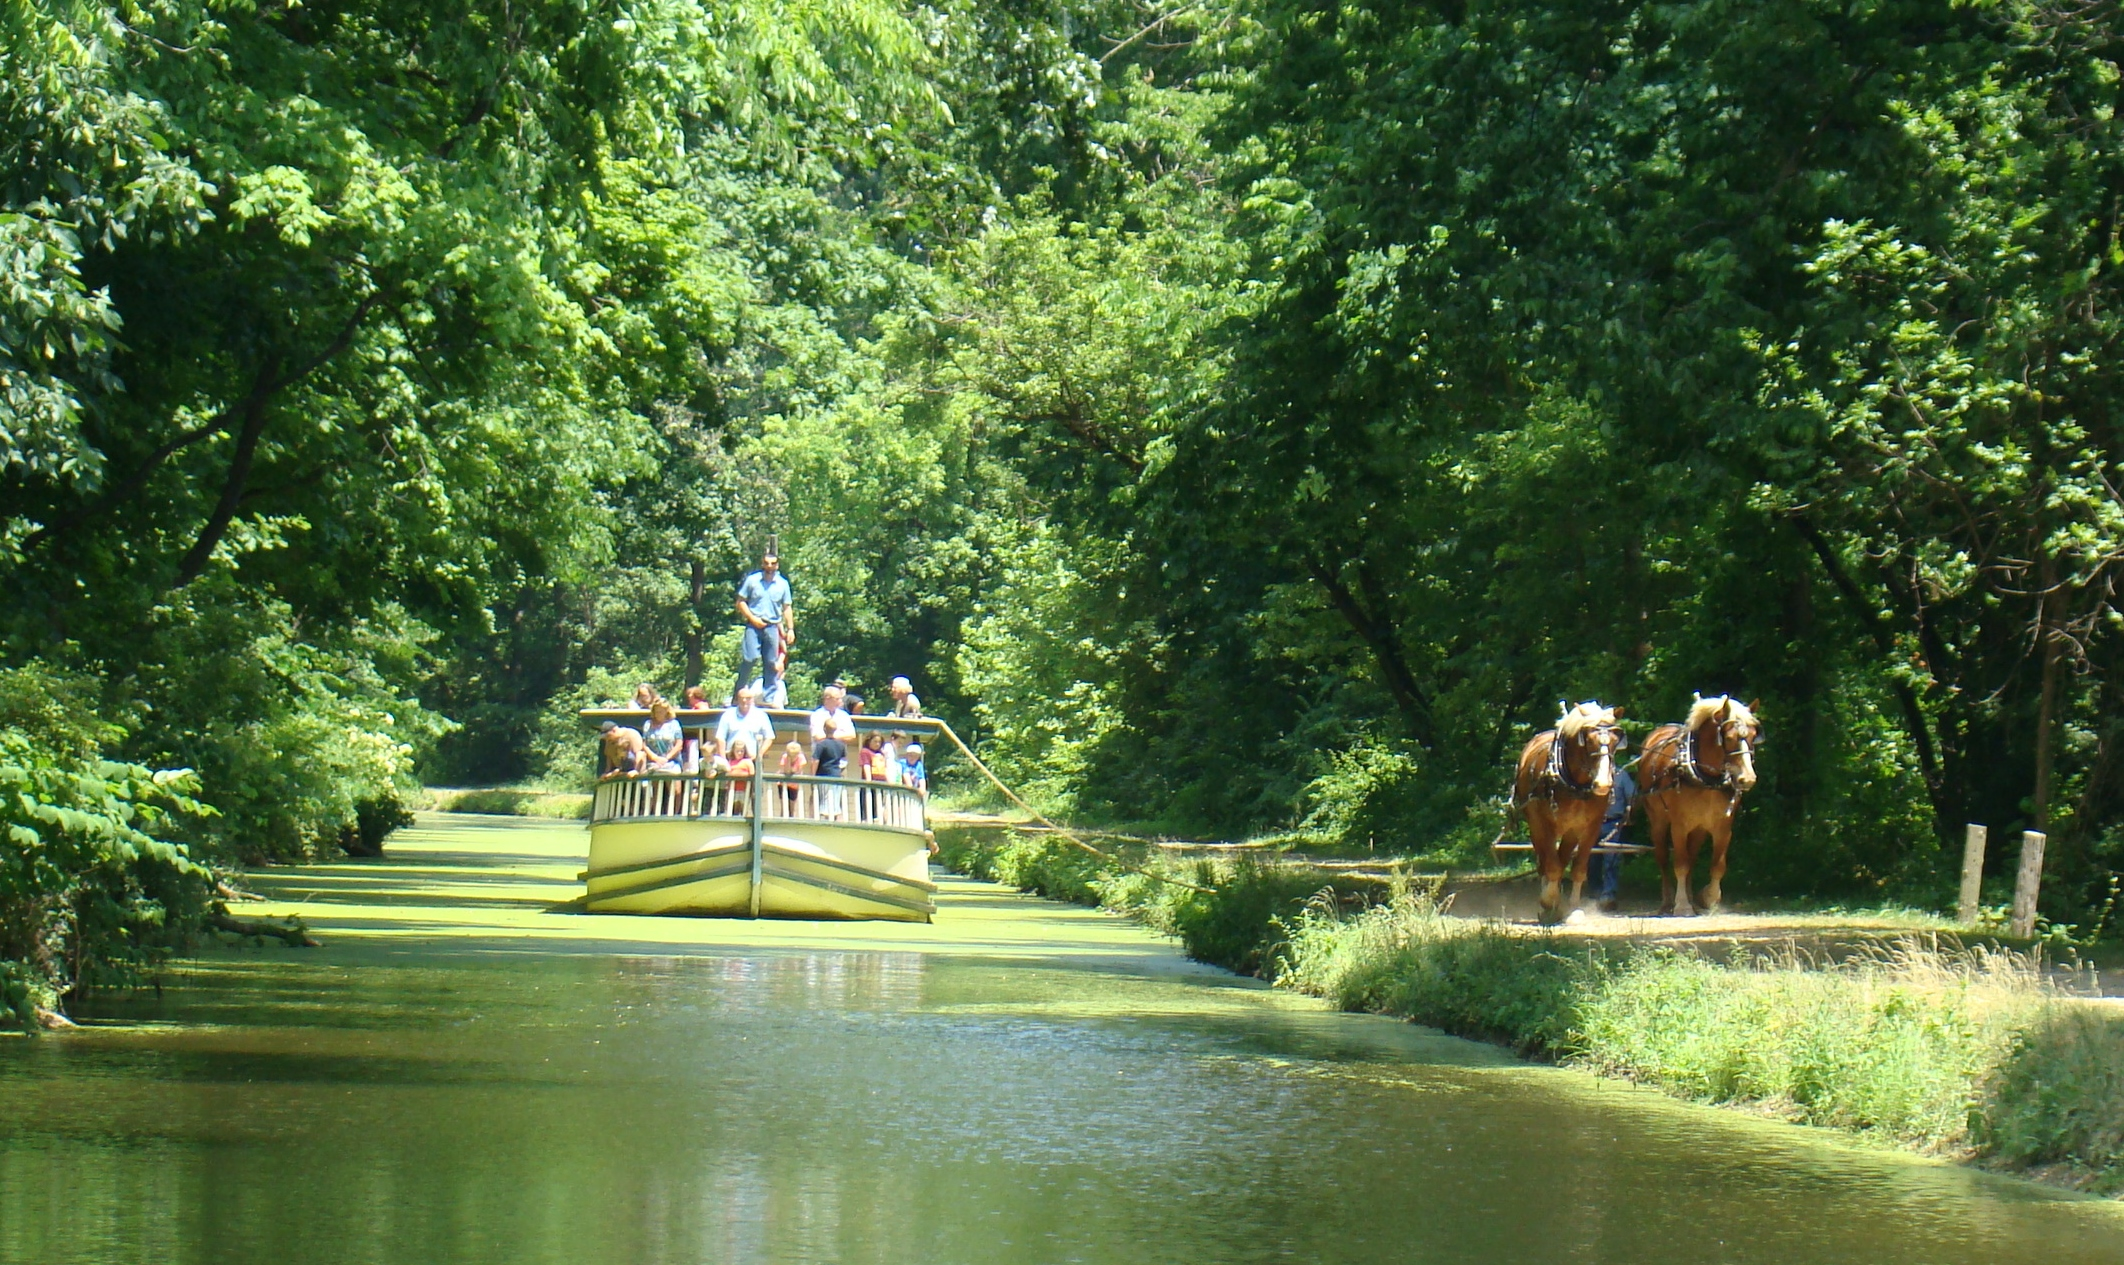 Monticello on the canal